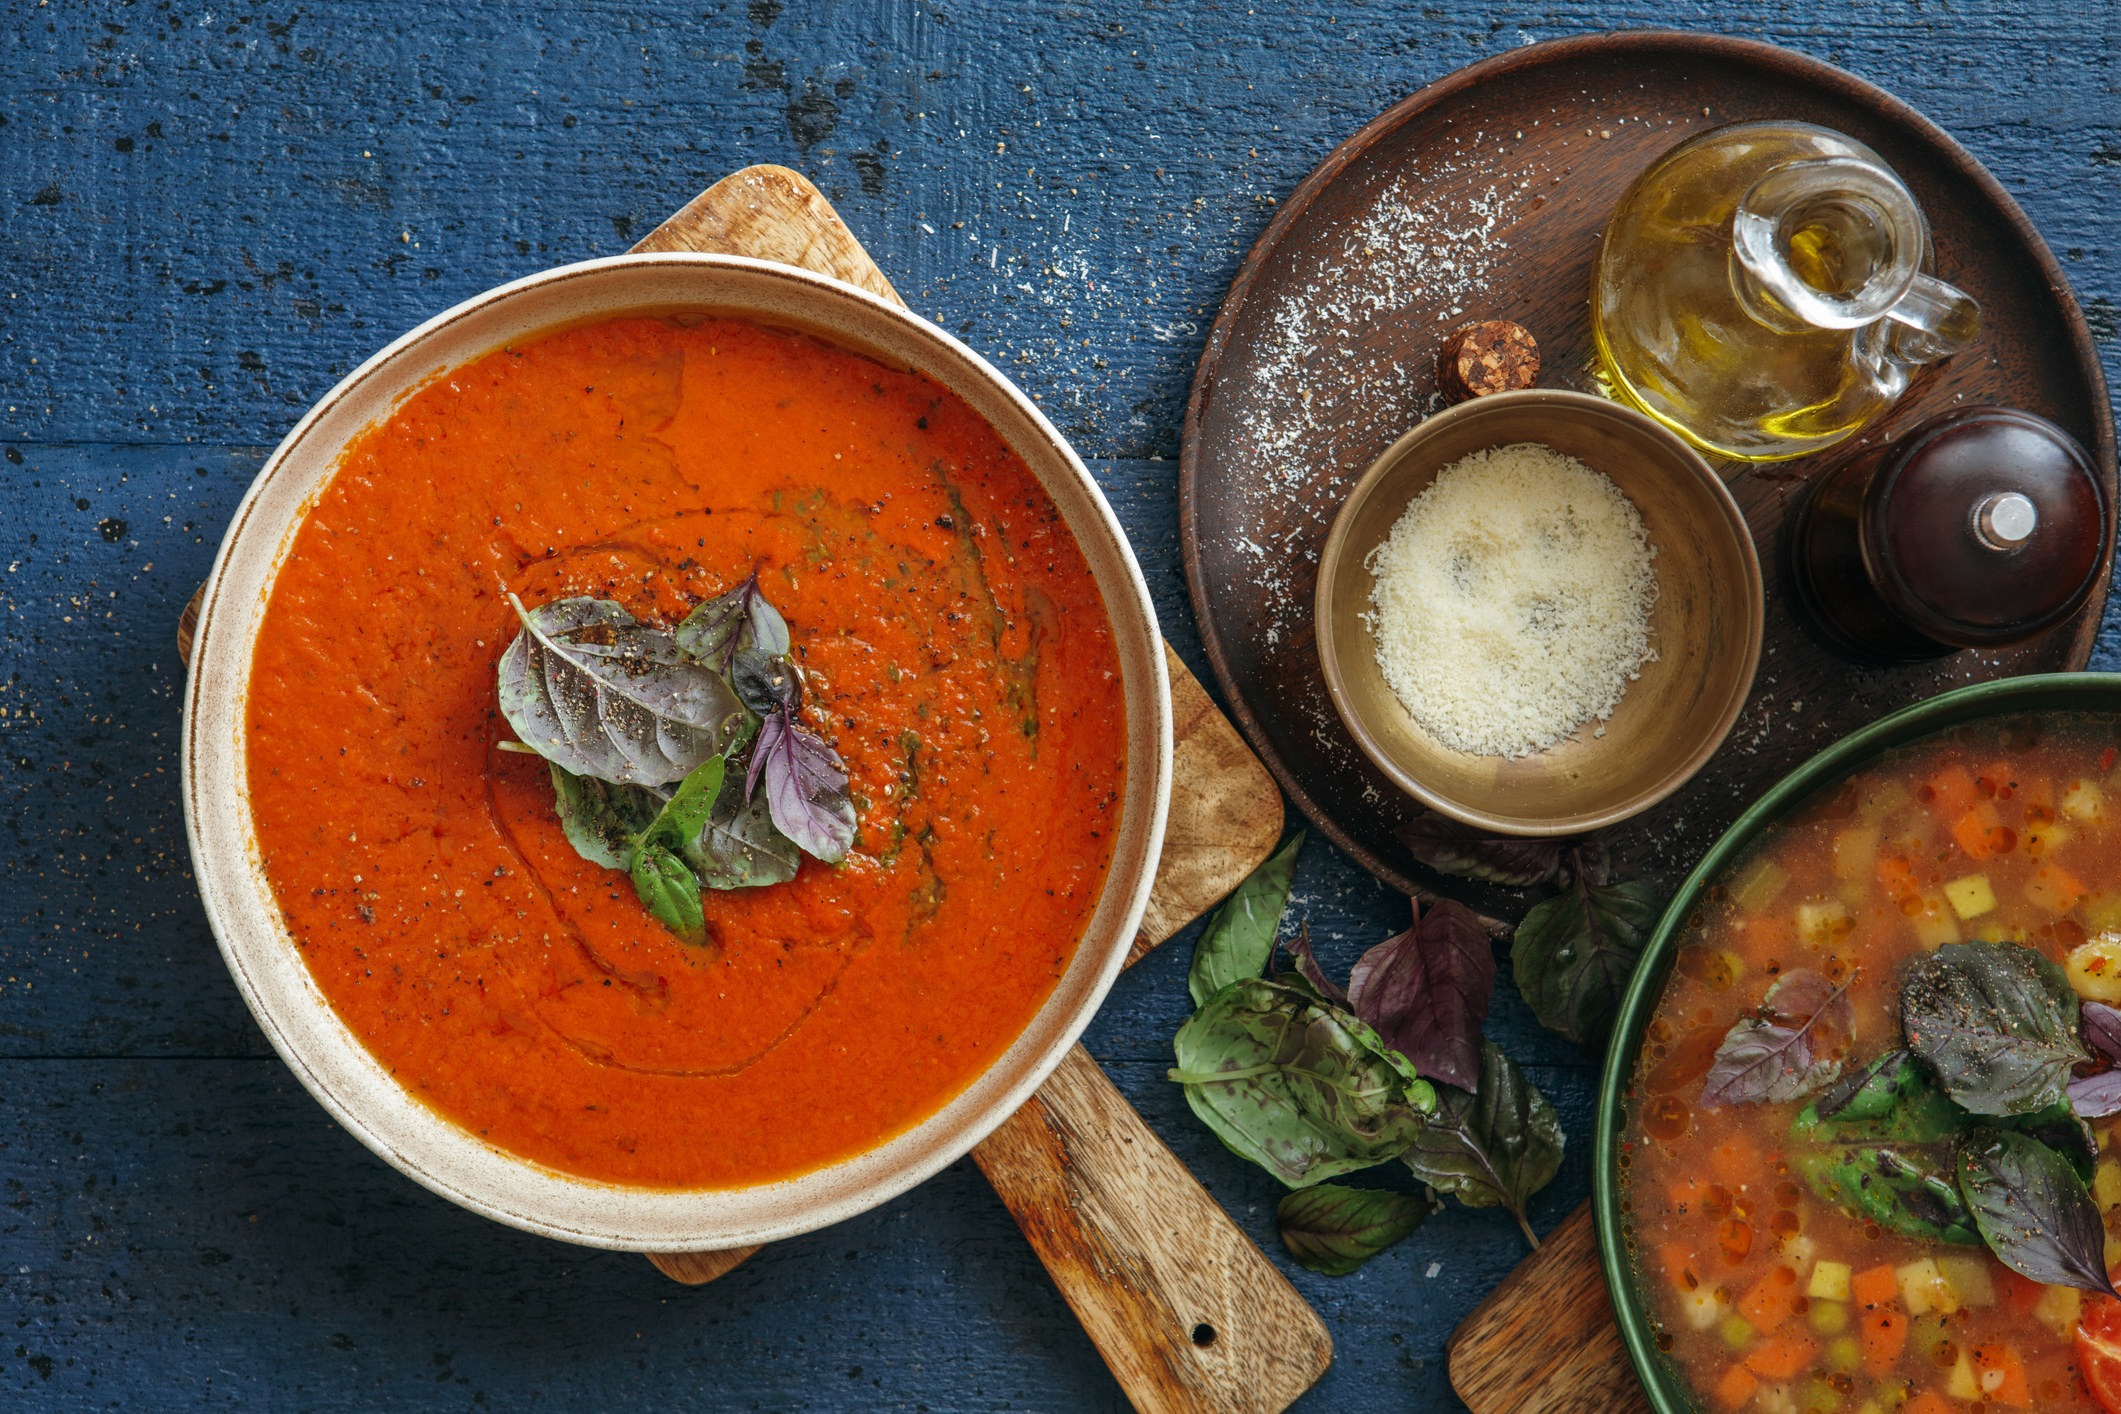 Italian soups with olive oil and cheese on the side